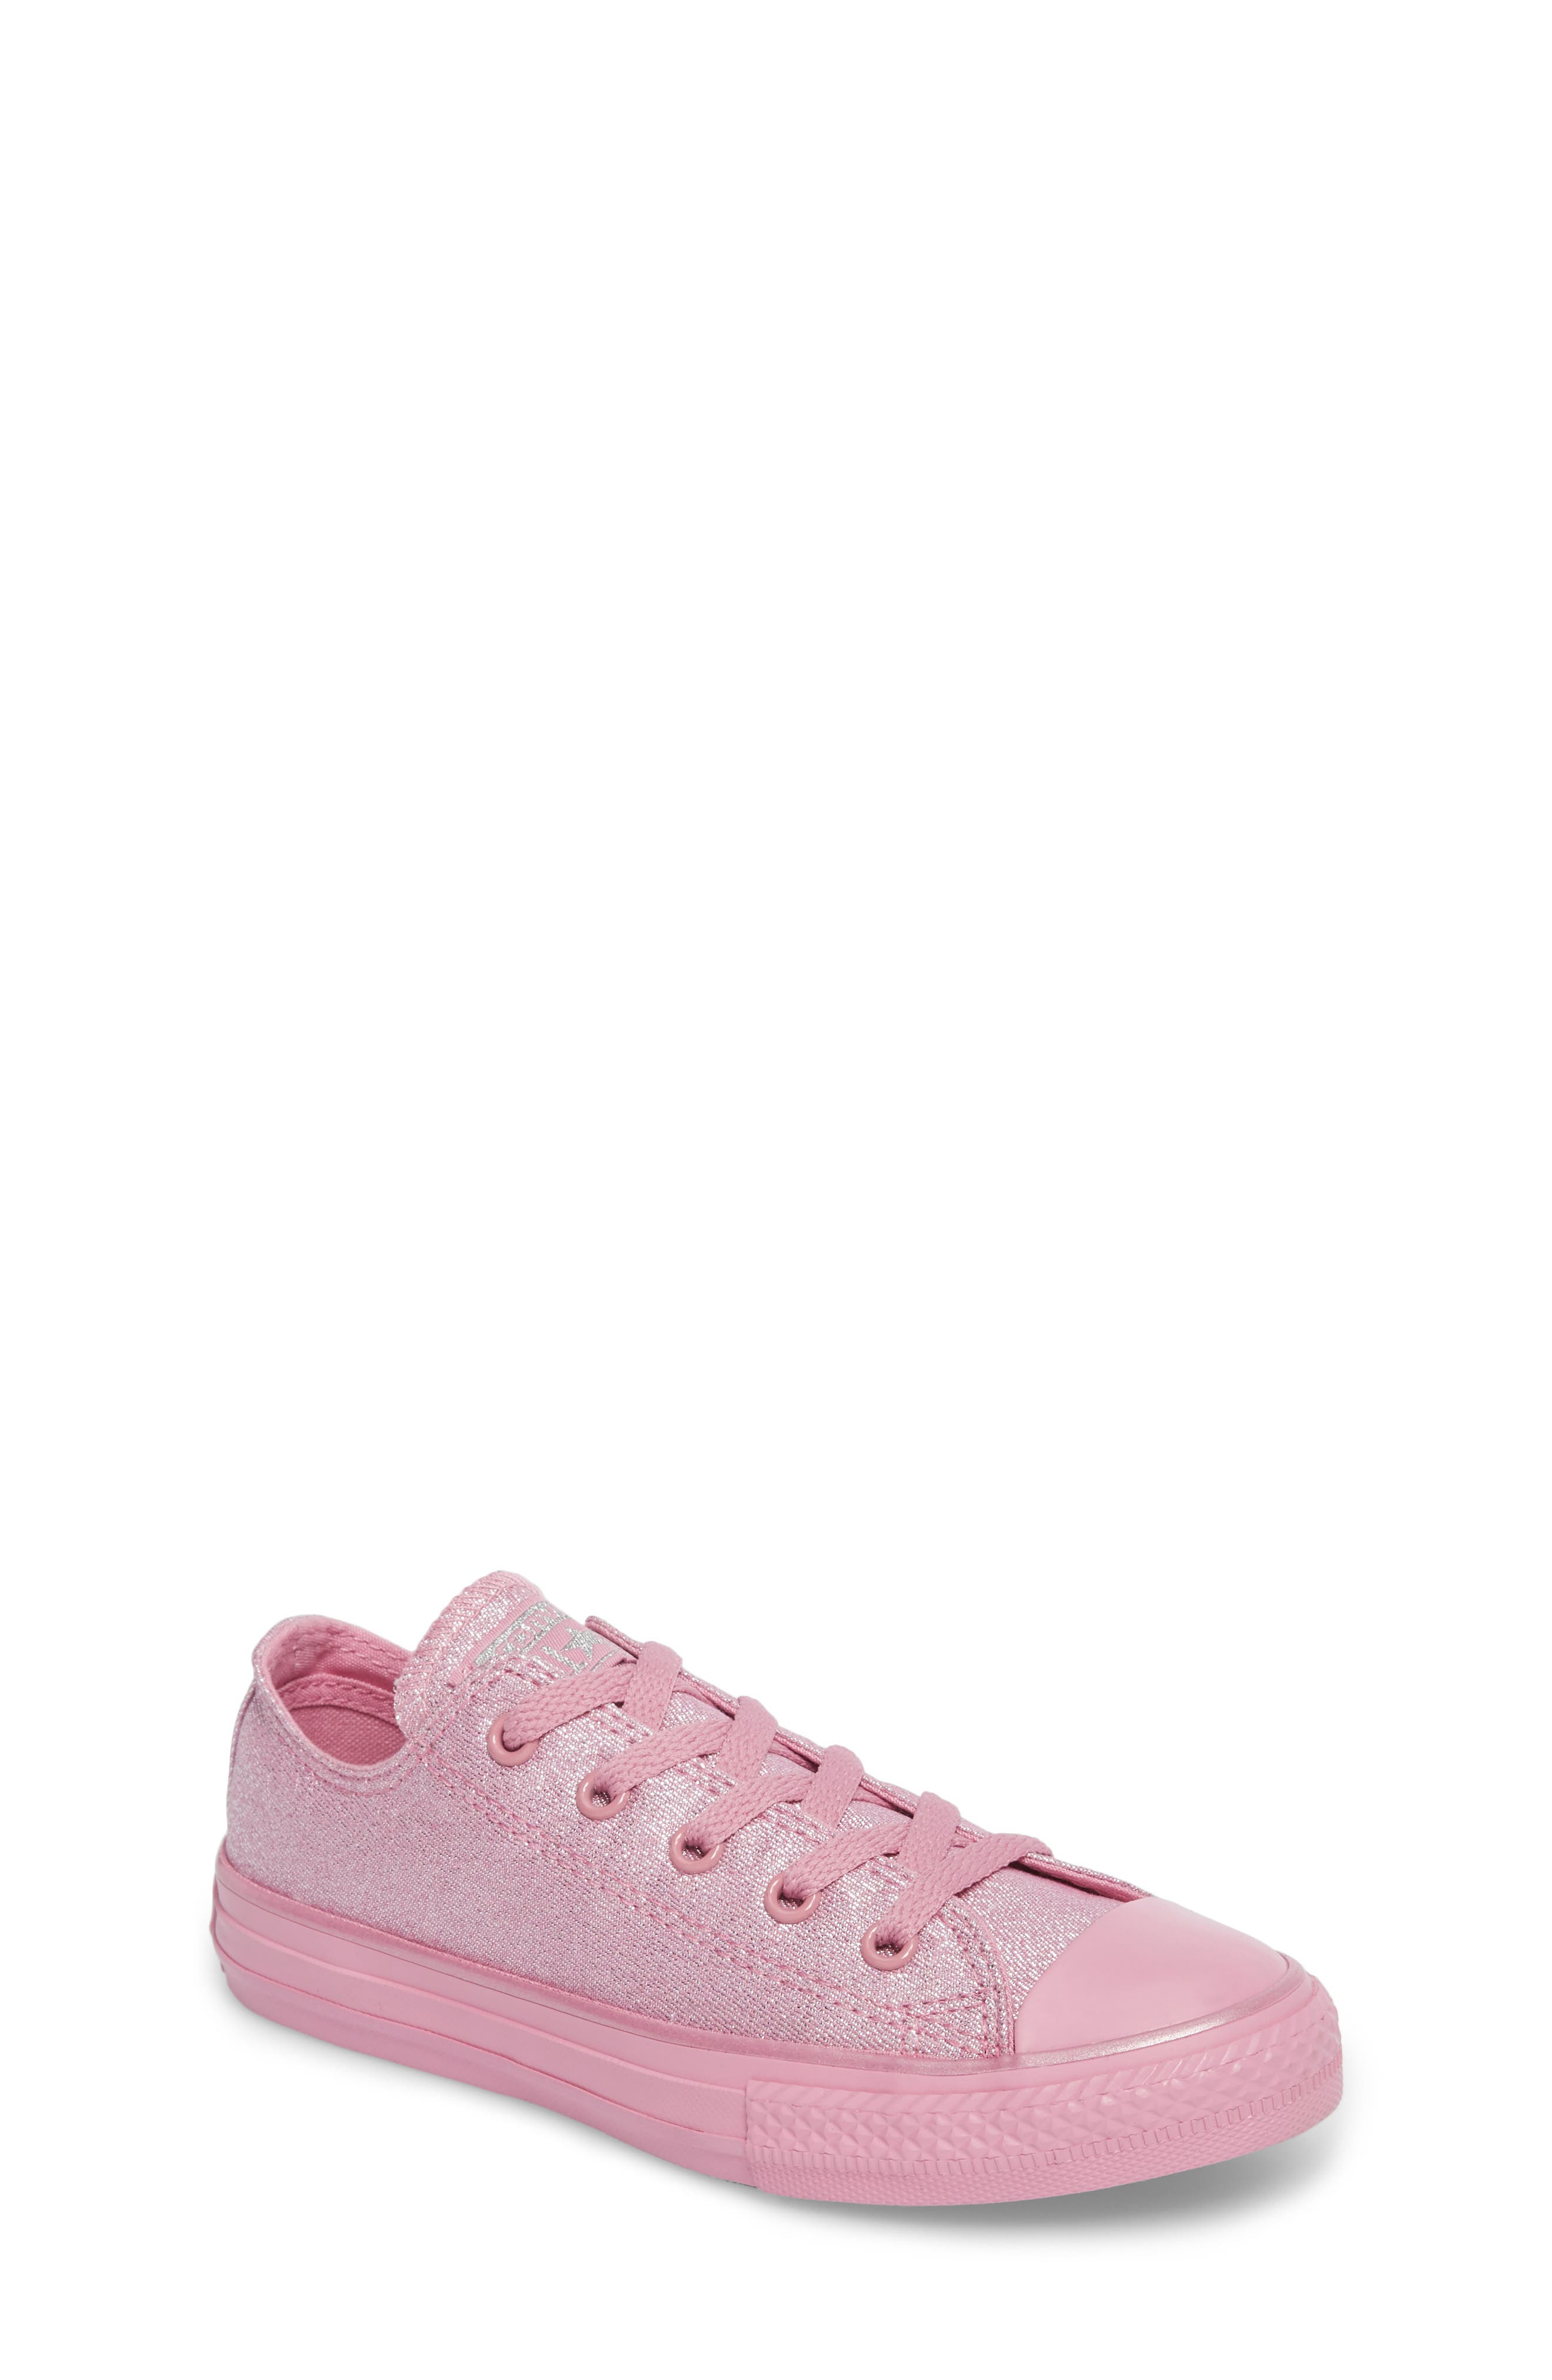 All Star<sup>®</sup> Mono Shine Low Top Sneaker,                             Main thumbnail 1, color,                             650